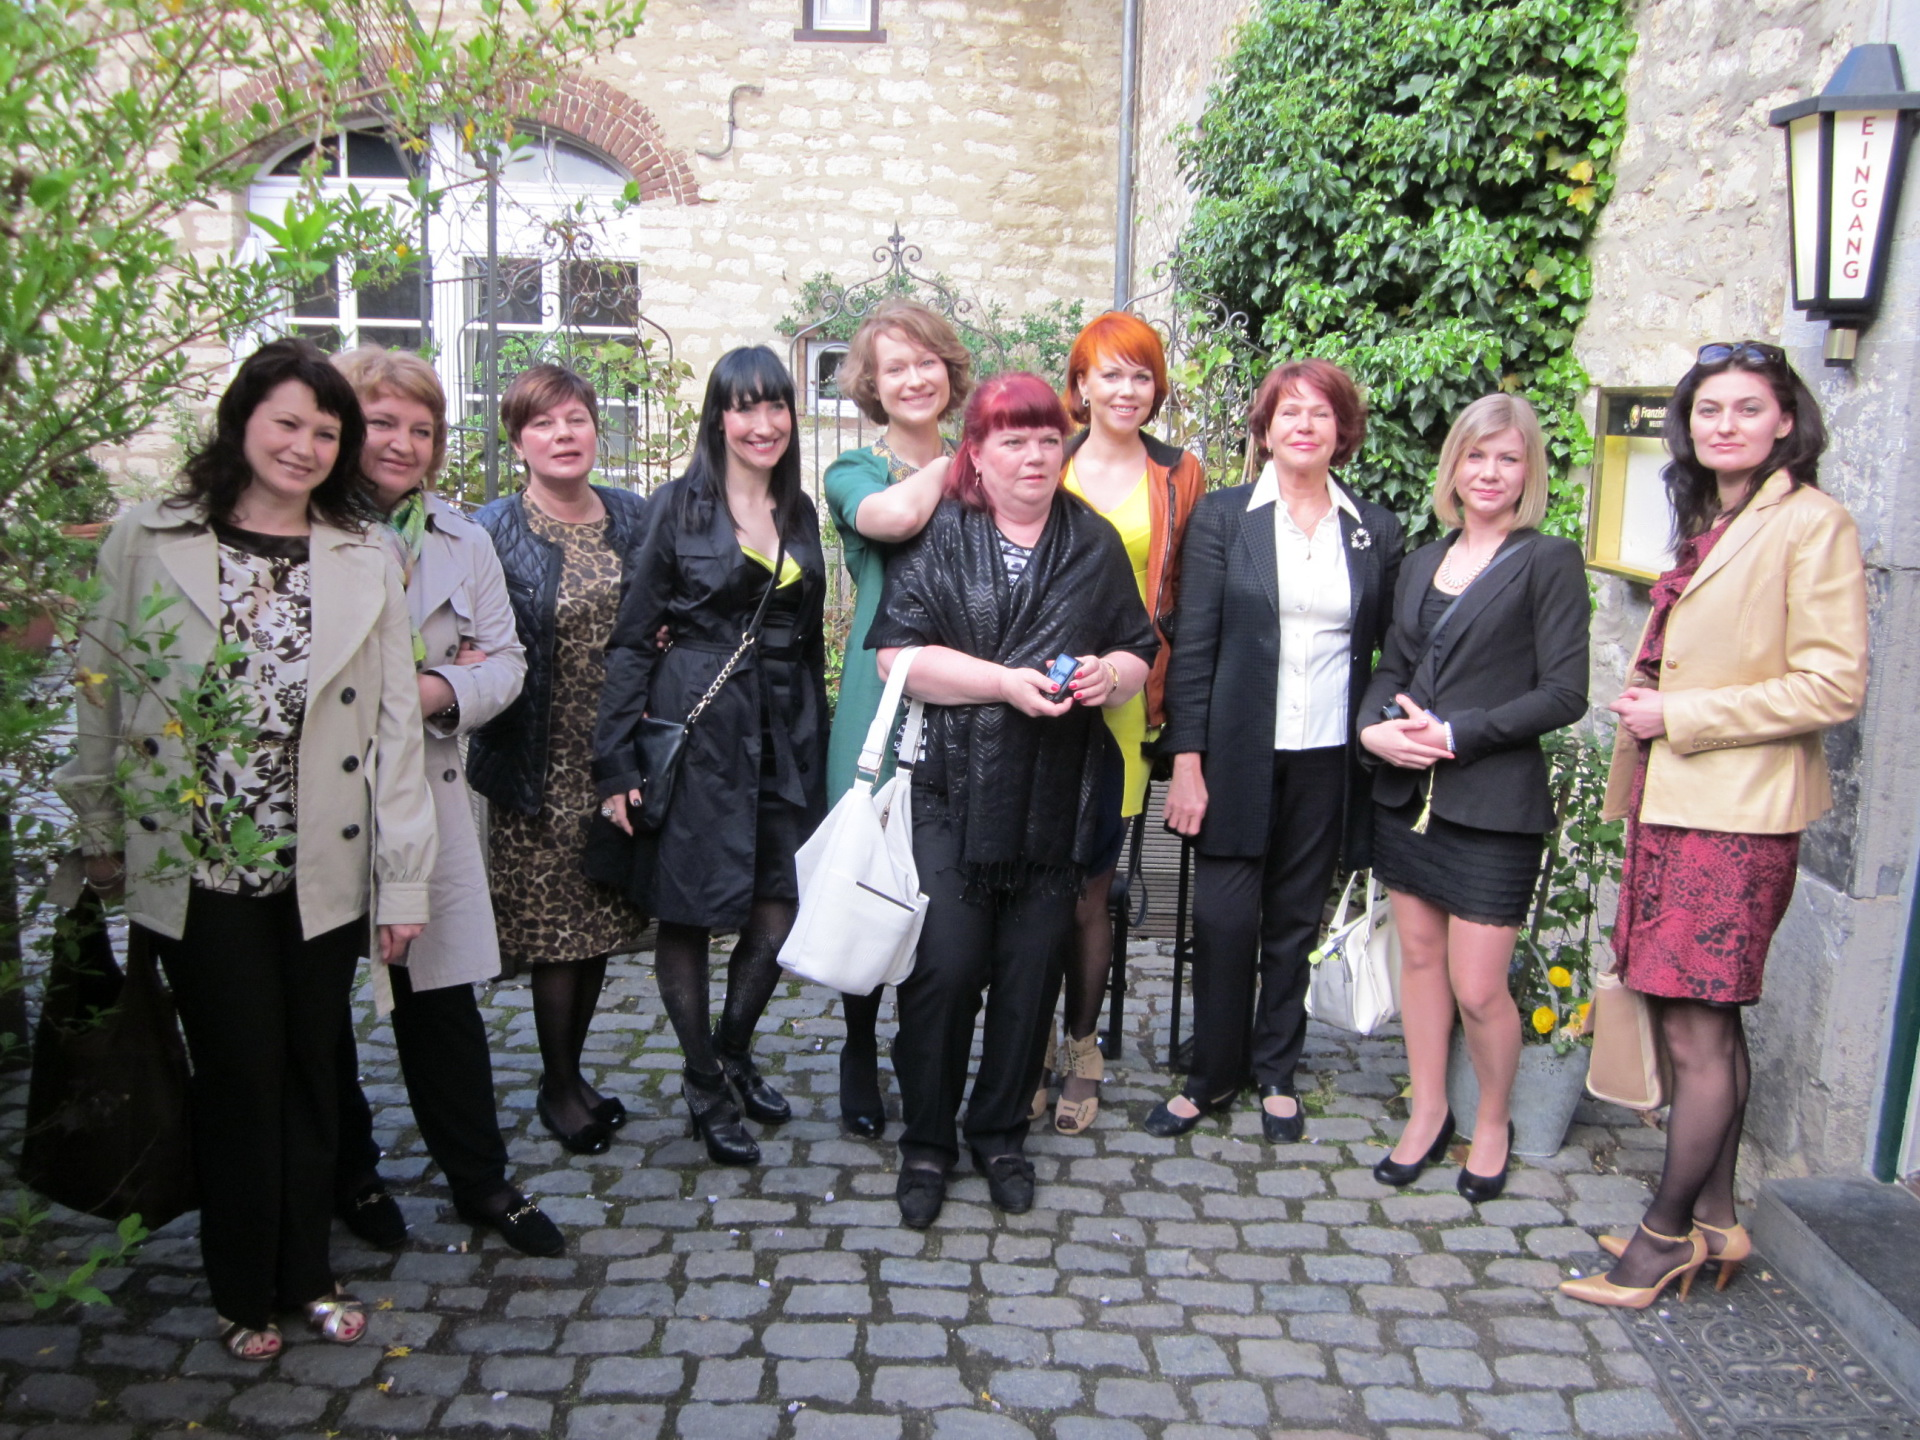 Guests from Eesti in Aachen 2013